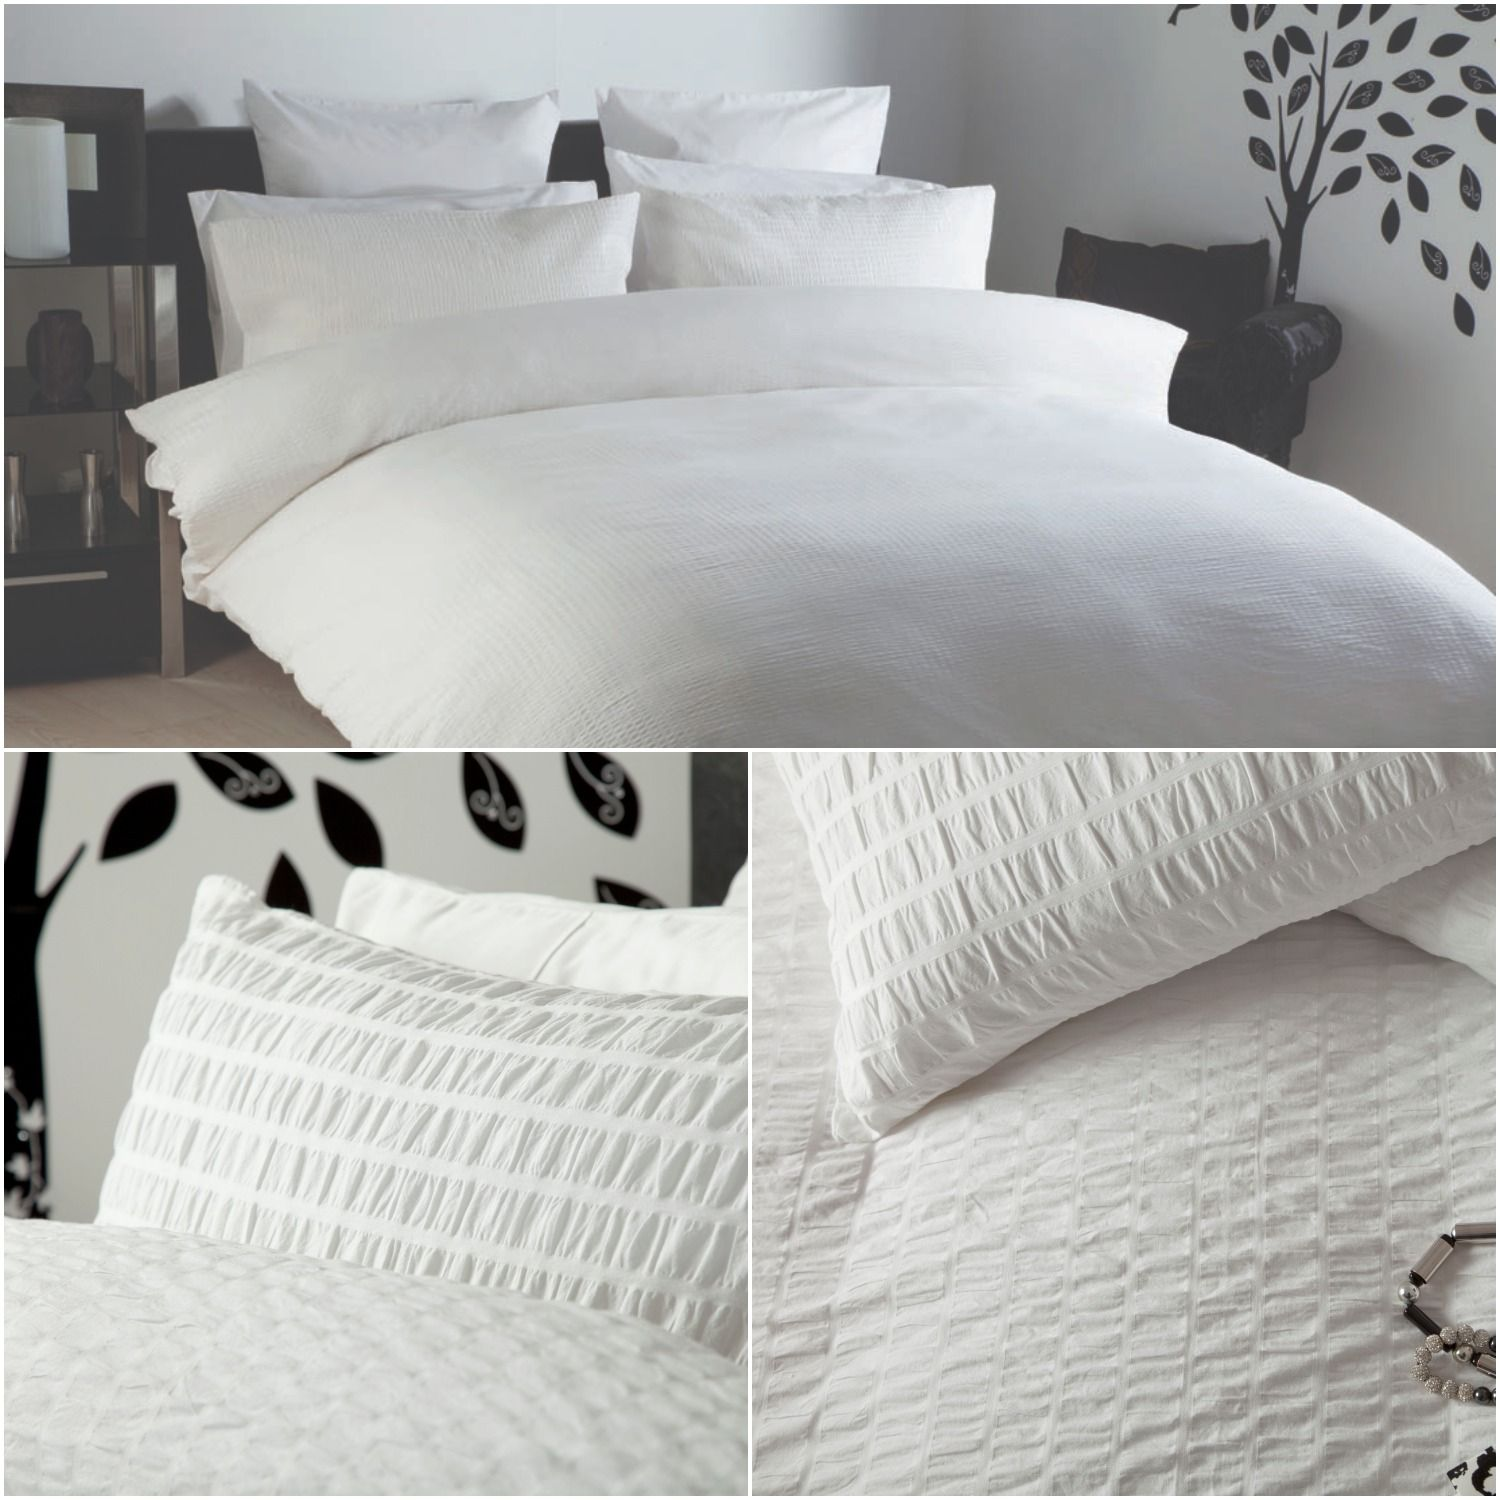 Belledorm Lincoln maison blanche Bed linens luxury